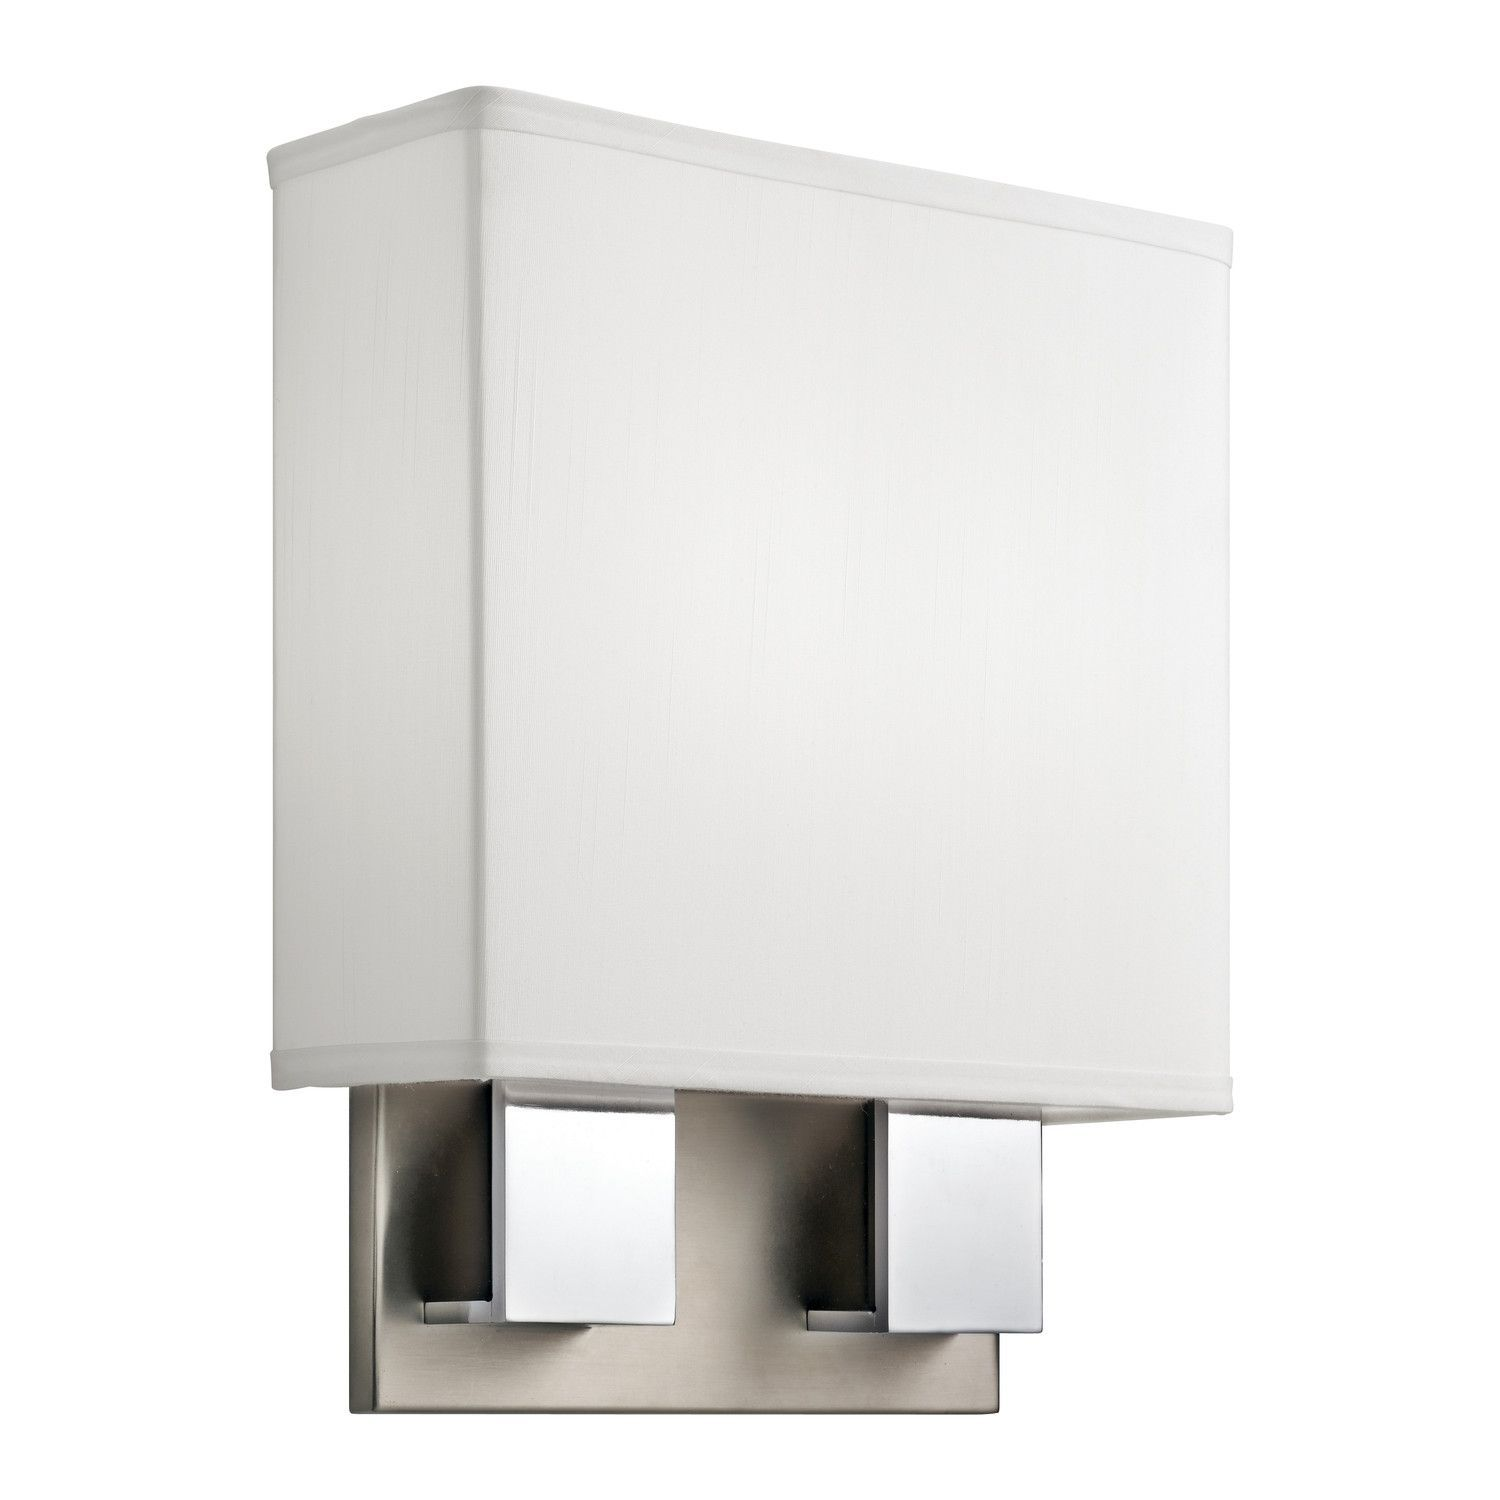 0-032475>1-Light Wall Bracket Brushed Nickel & Chrome ... on Decorative Wall Sconces Candle Holders Chrome Nickel id=19089